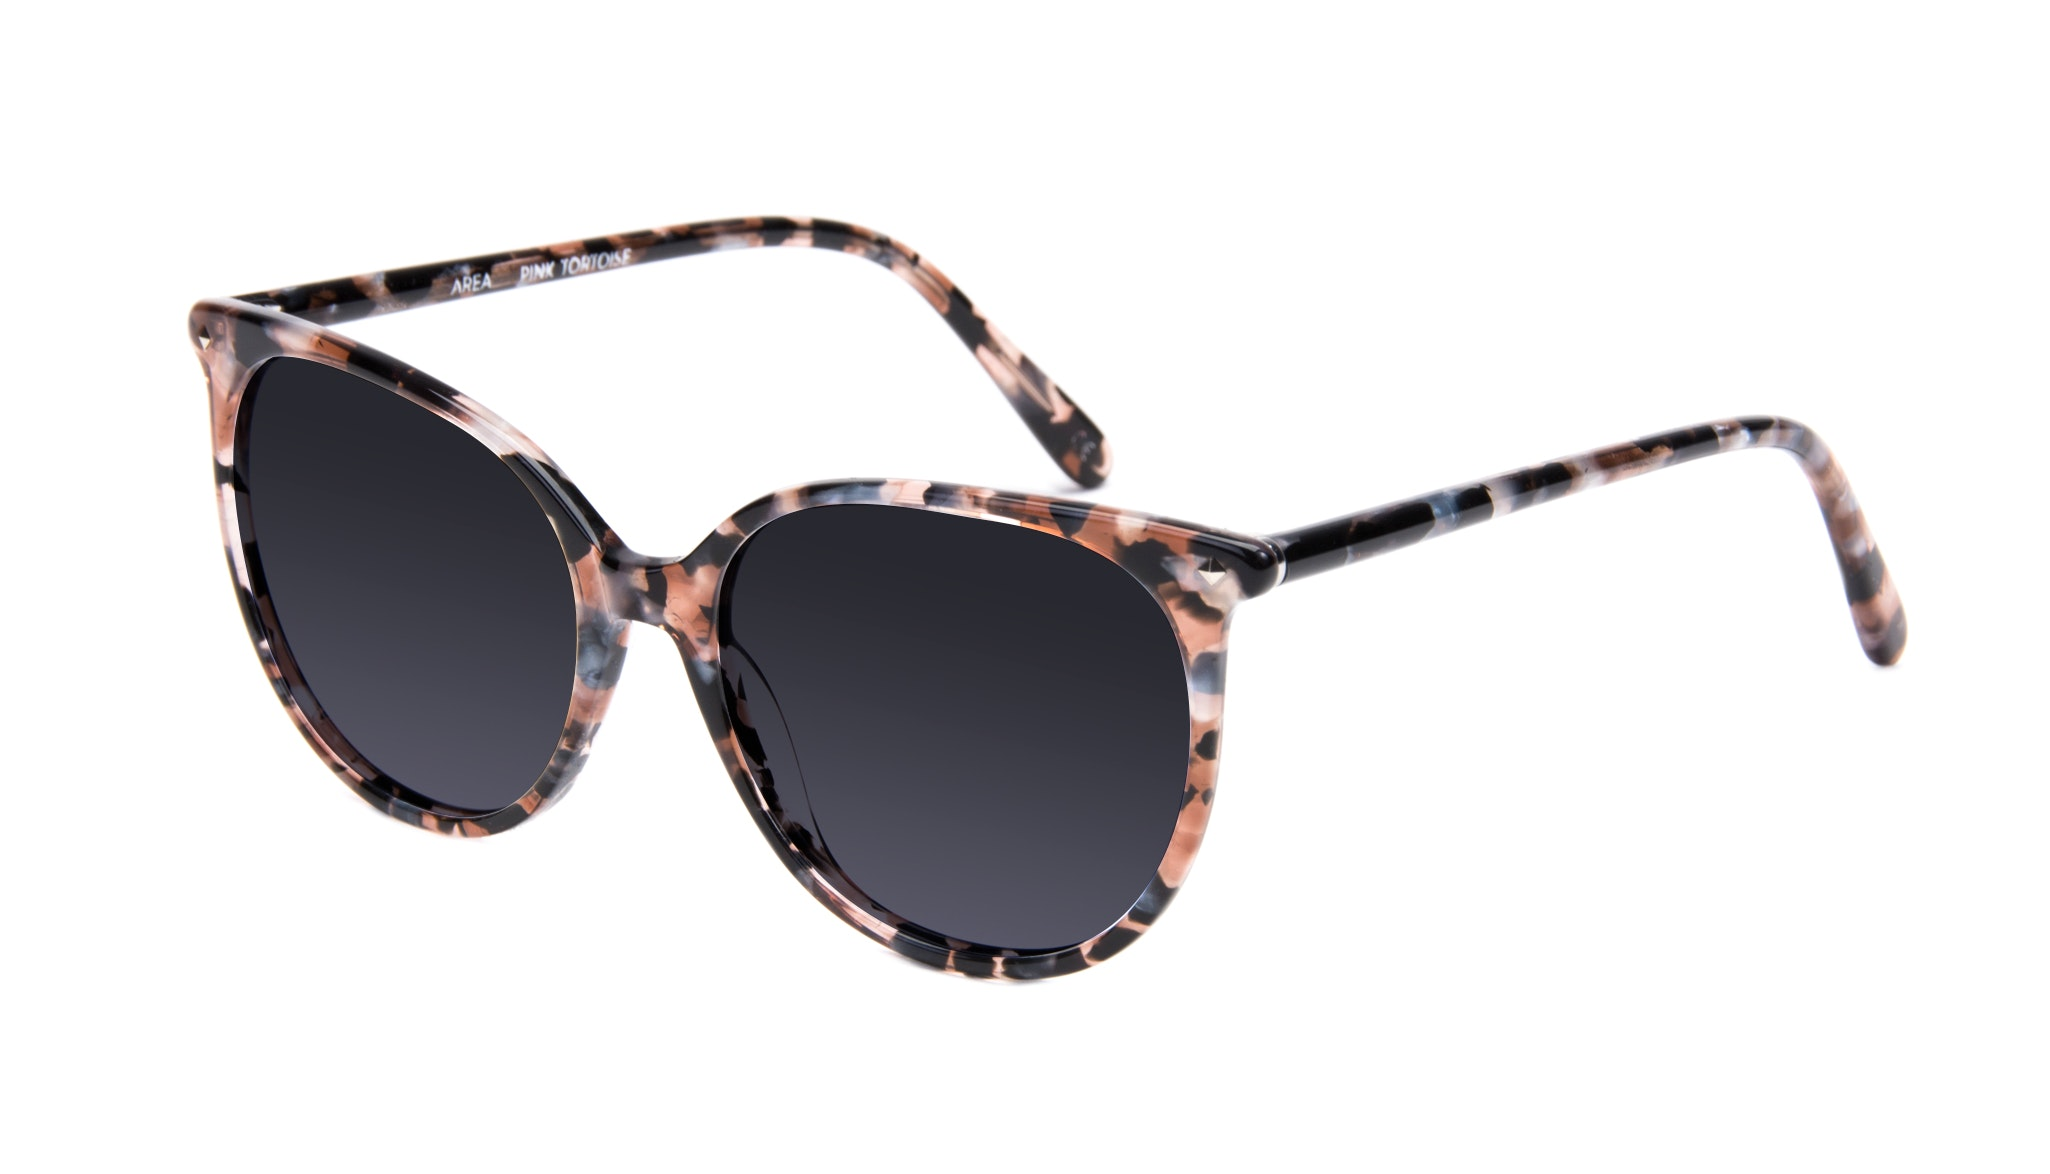 Affordable Fashion Glasses Cat Eye Square Sunglasses Women Area Pink Tortoise Tilt